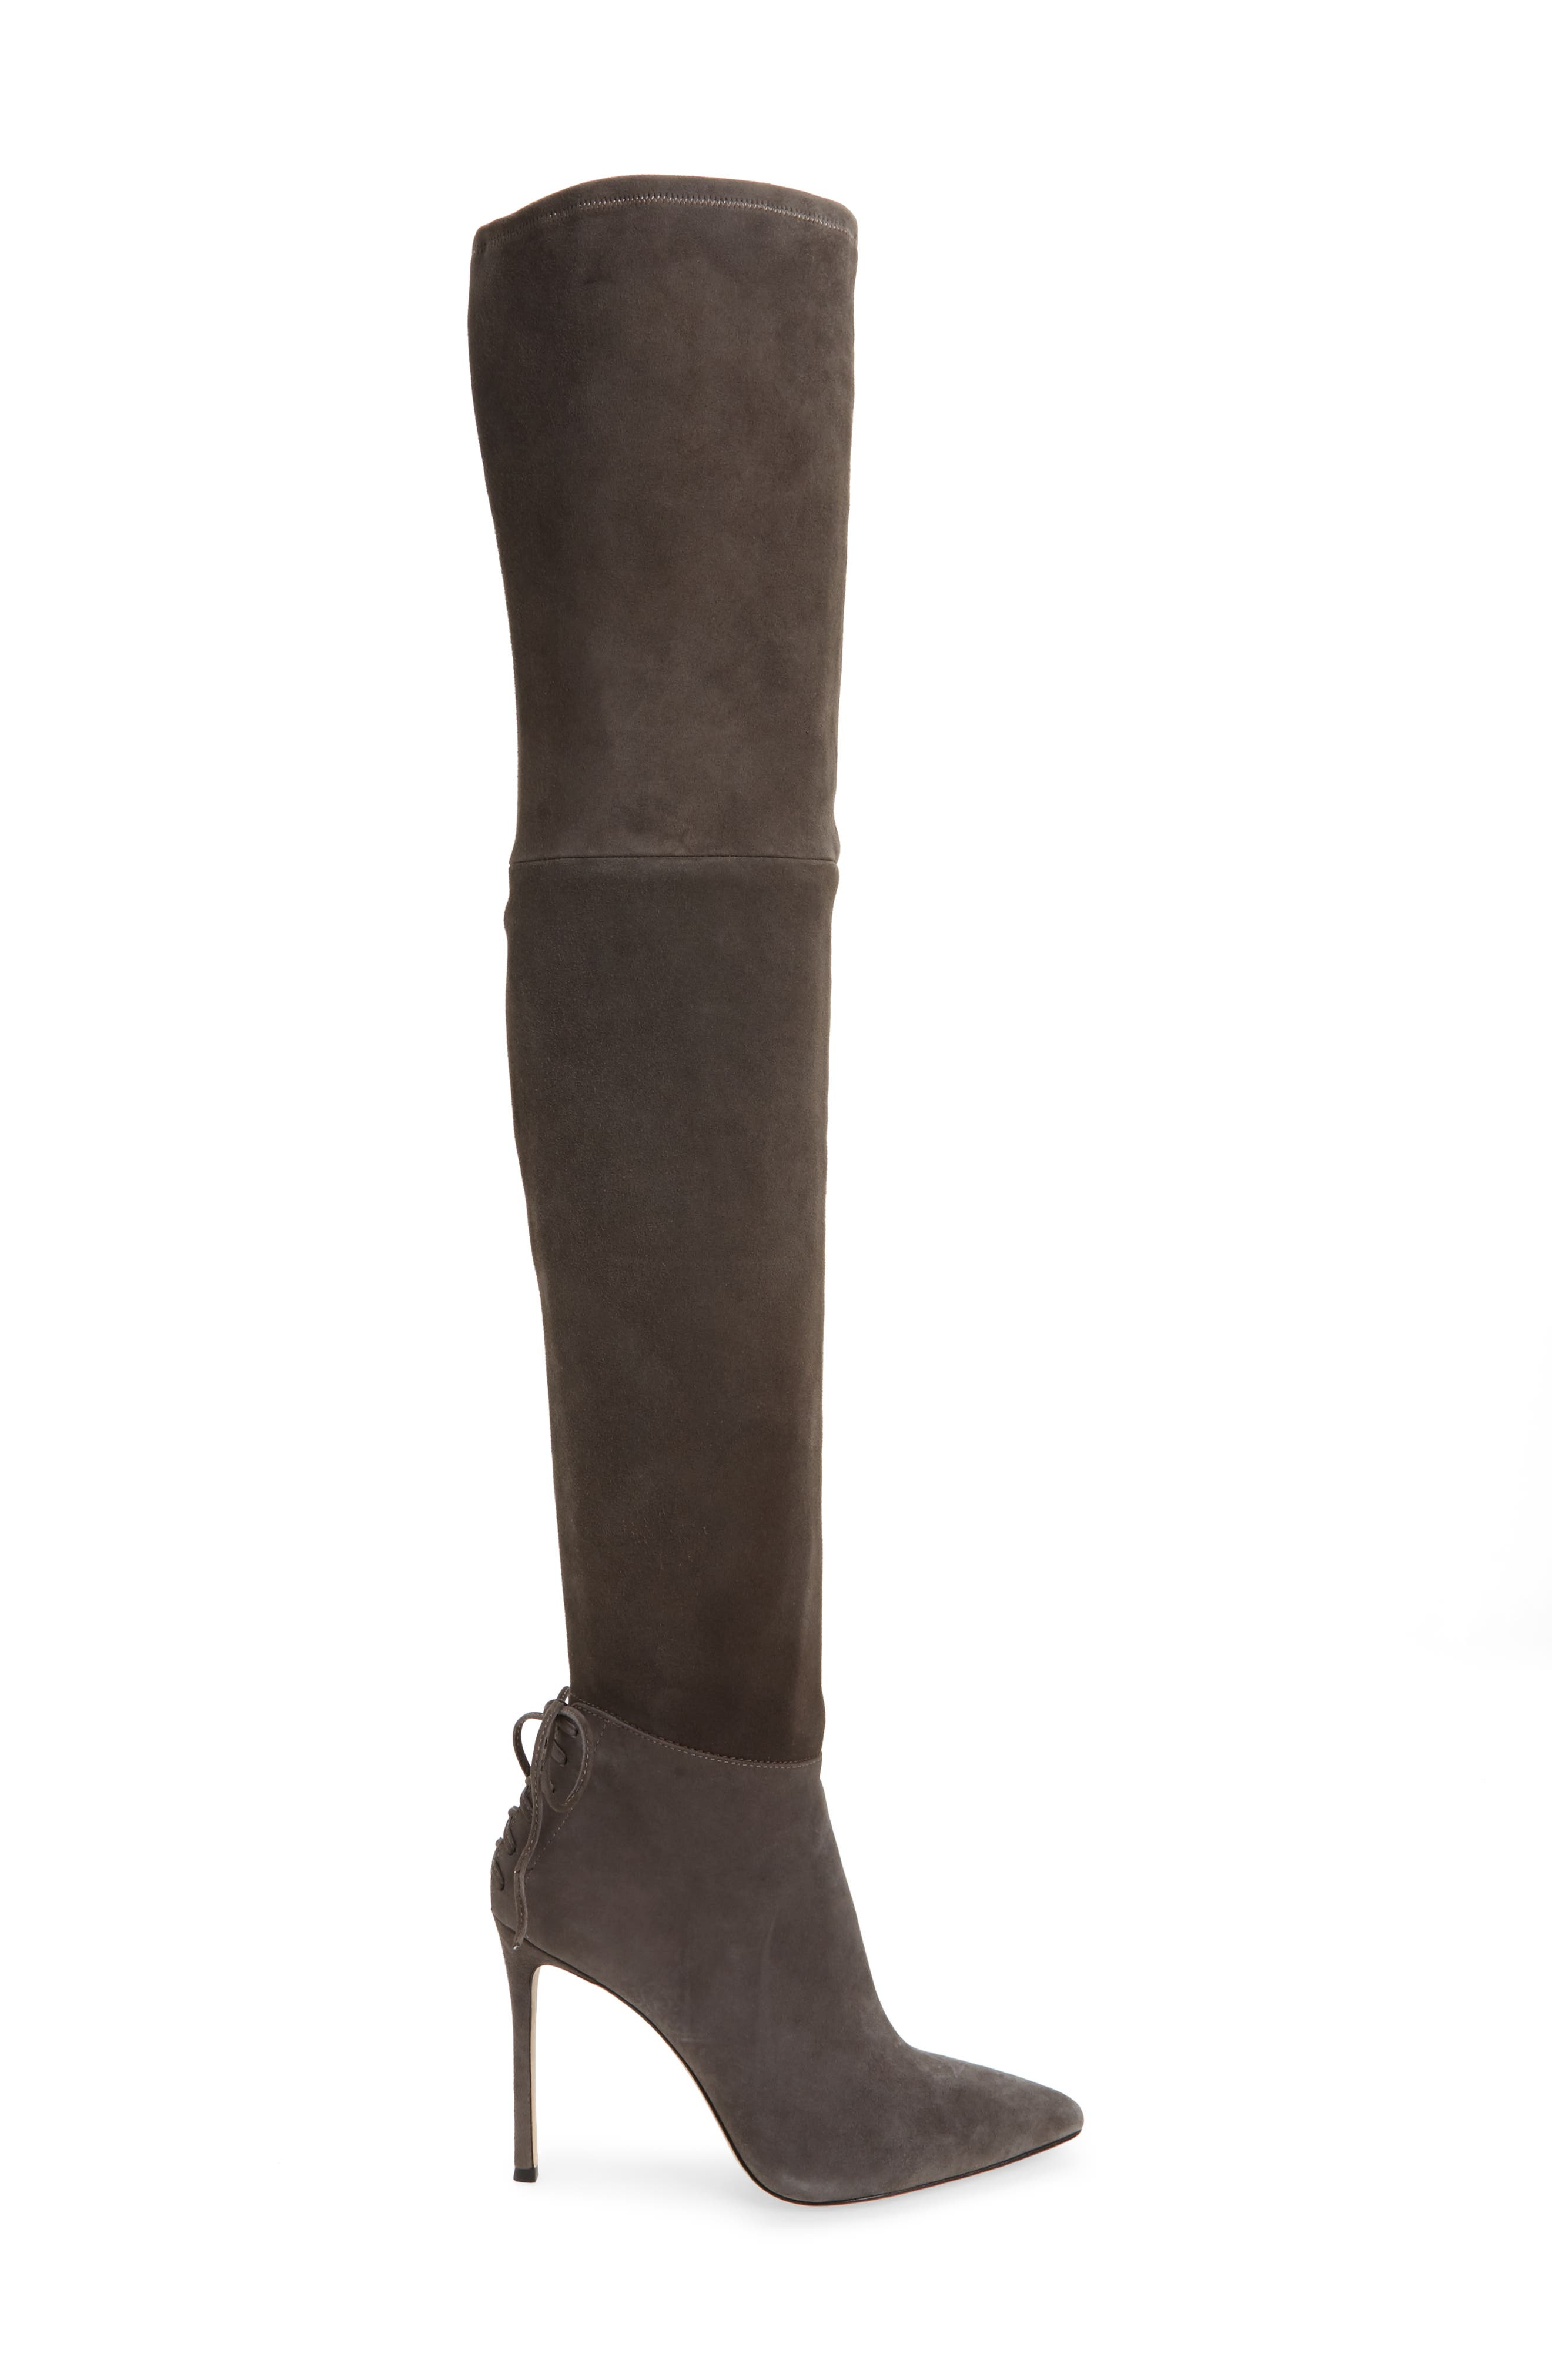 'Caterina' Over the Knee Boot,                             Alternate thumbnail 3, color,                             037